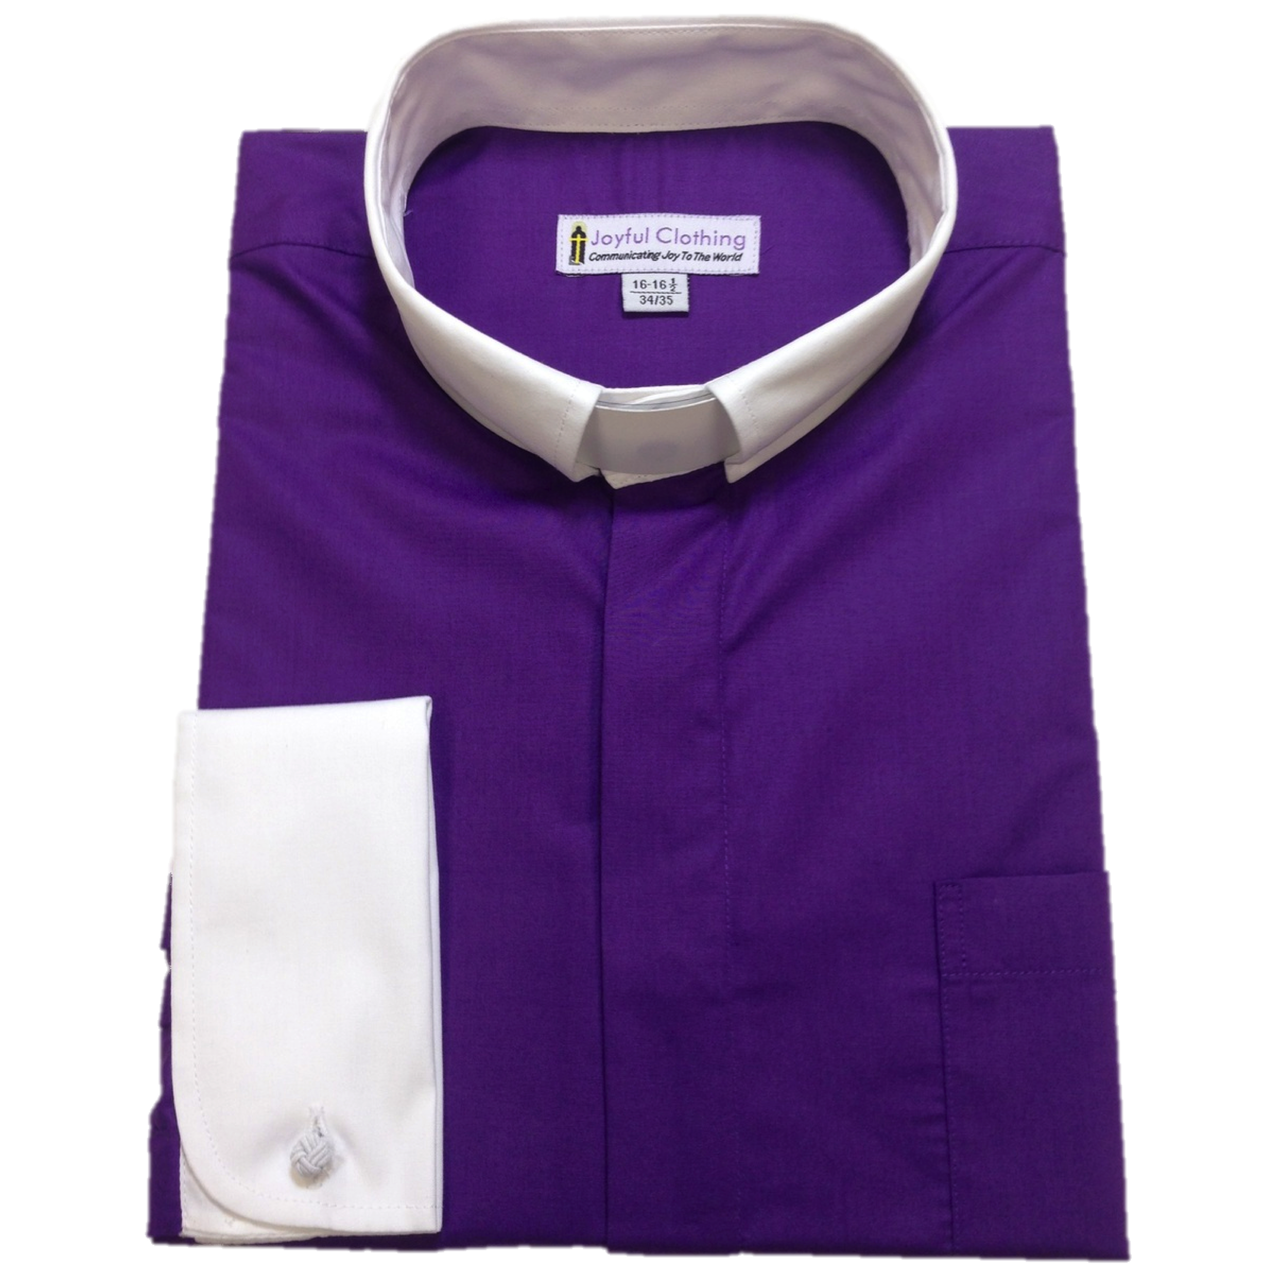 134. Men's Contrast Tab-Collar Clergy Shirt - Purple/White Collar